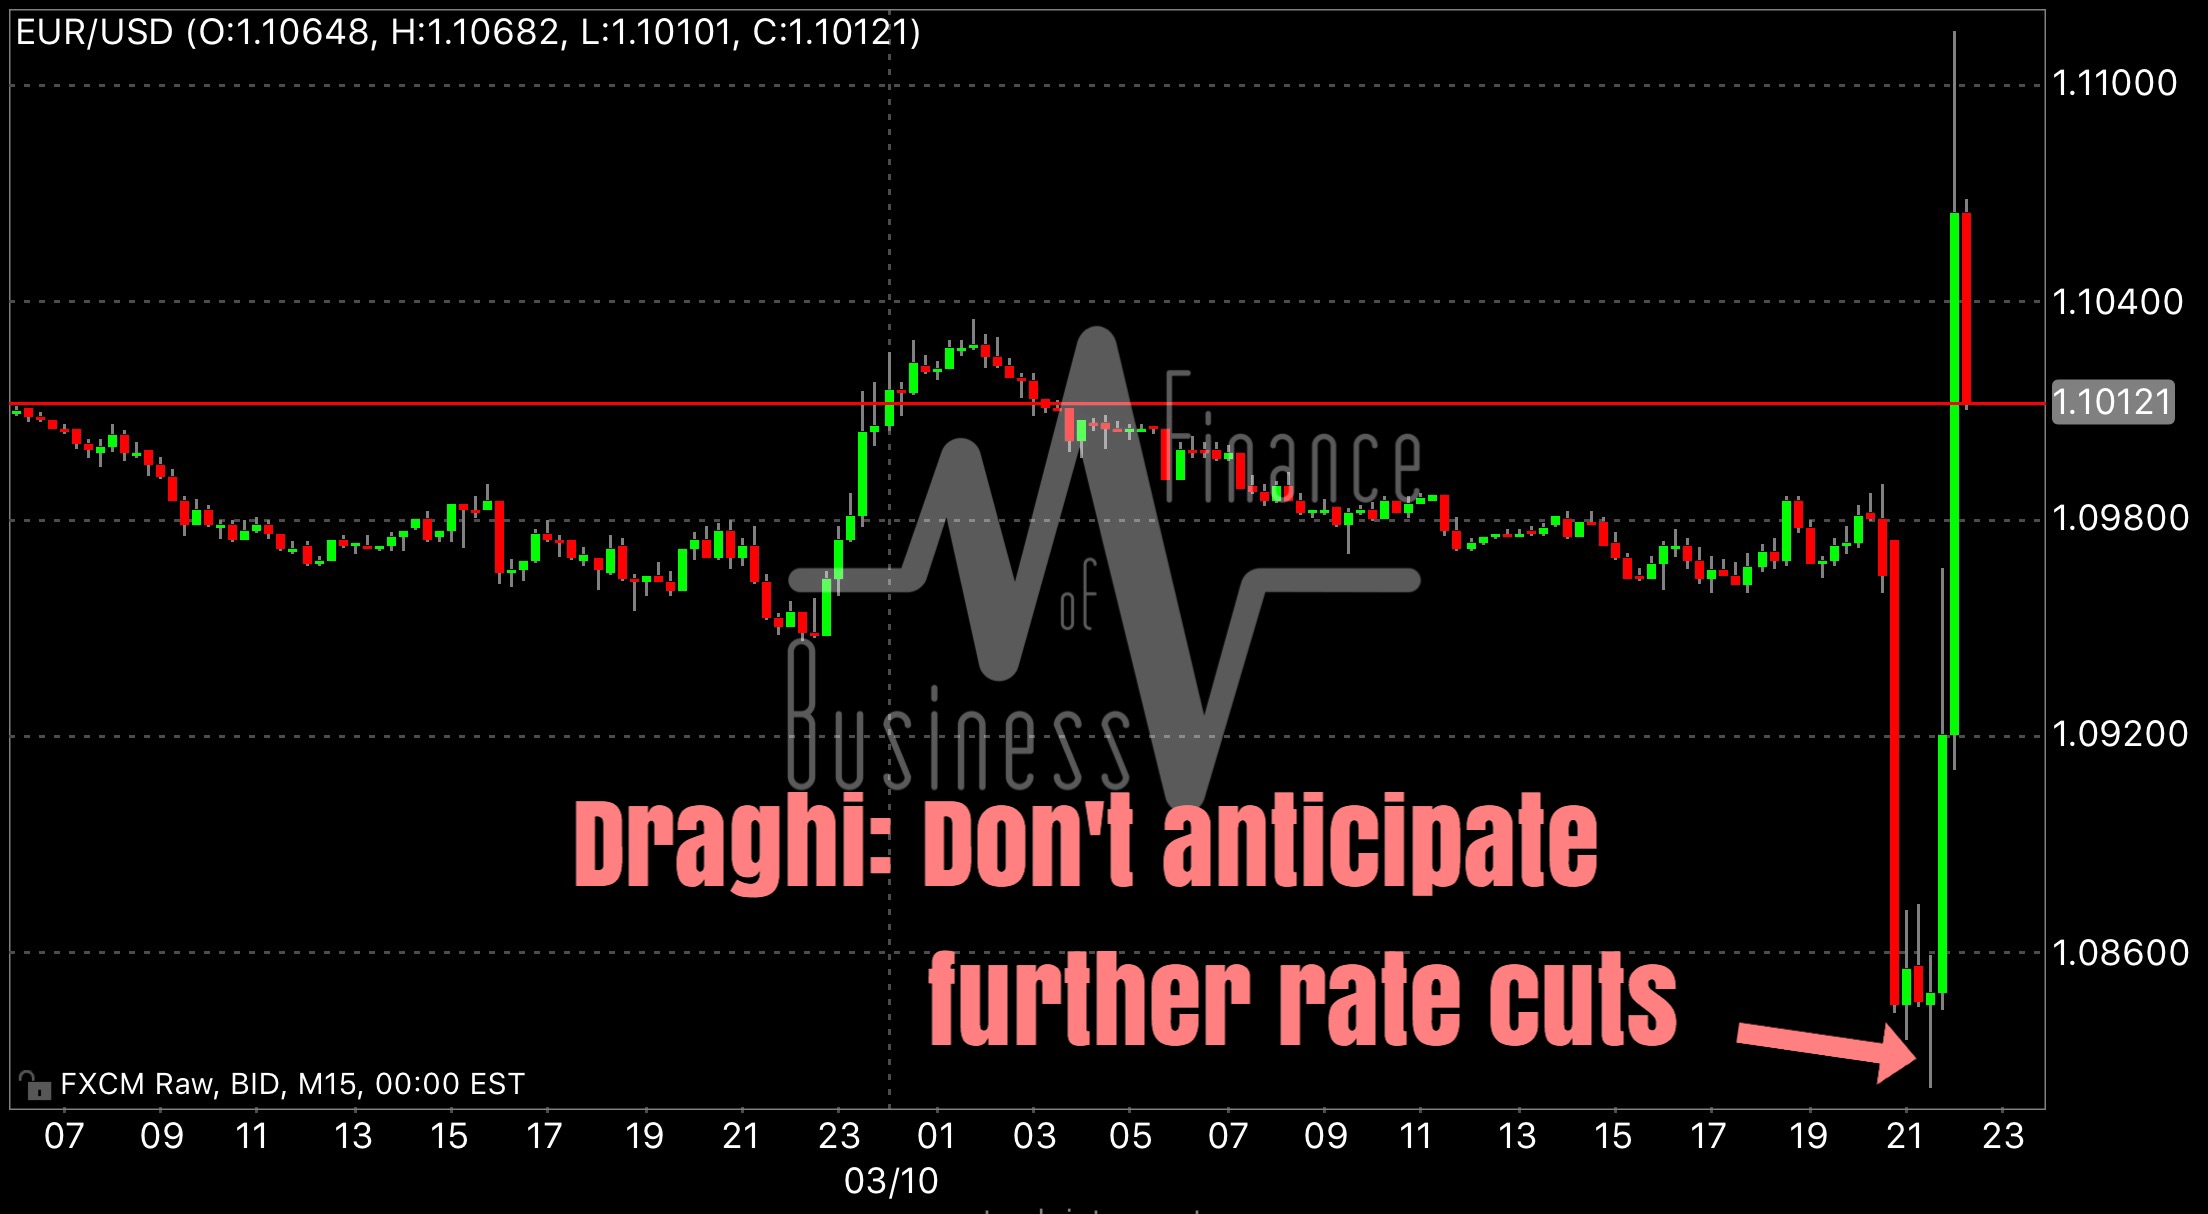 """""""Draghi just trolled the markets in his presser, once again. Euro erases all its post rate cut losses and clears the 1.11 figure! This is insane volatility.""""   Business Of Finance on Facebook, 10 March 2016"""